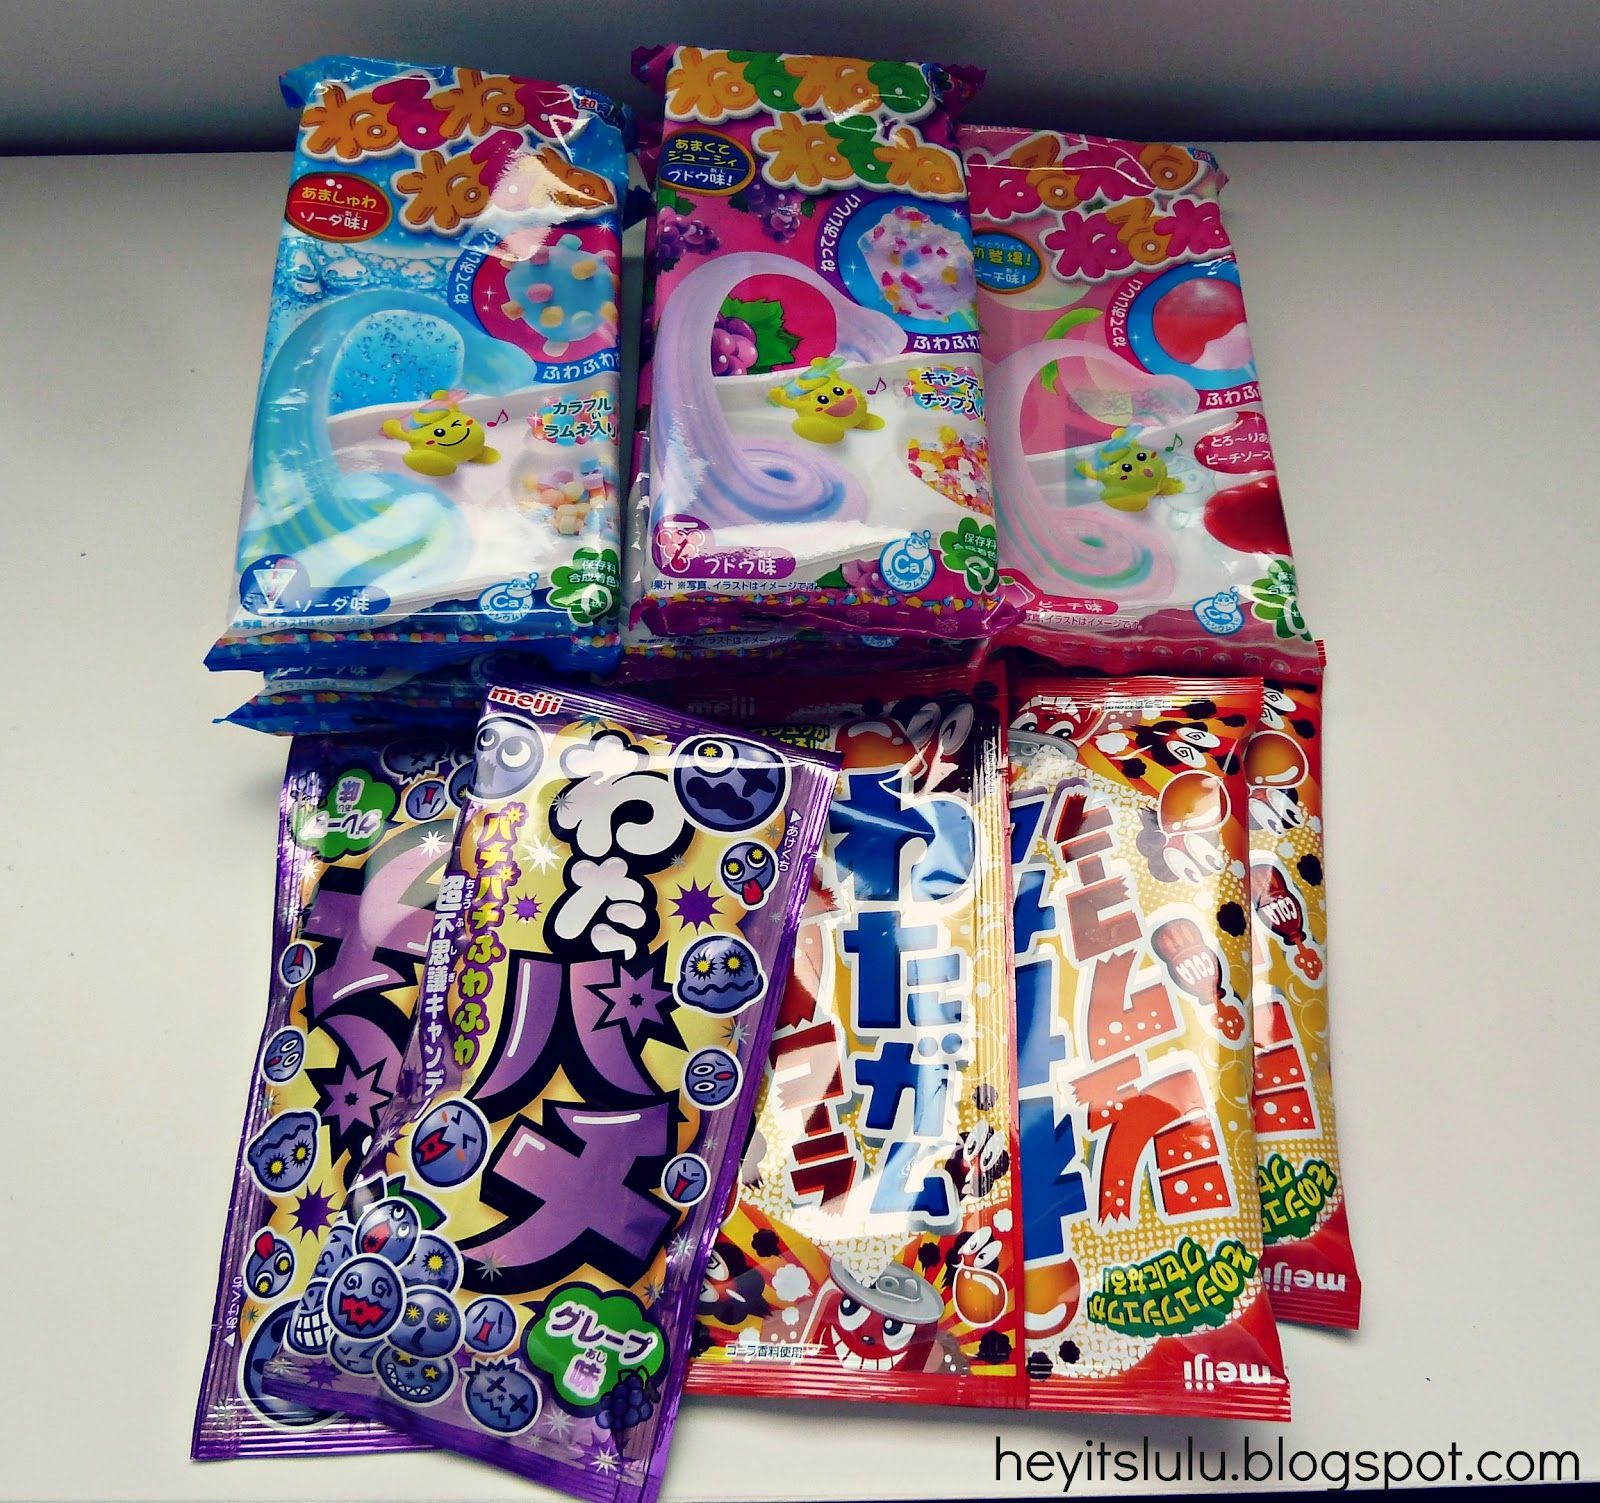 Fun Japanese Candy (With images) Japanese candy, Chinese